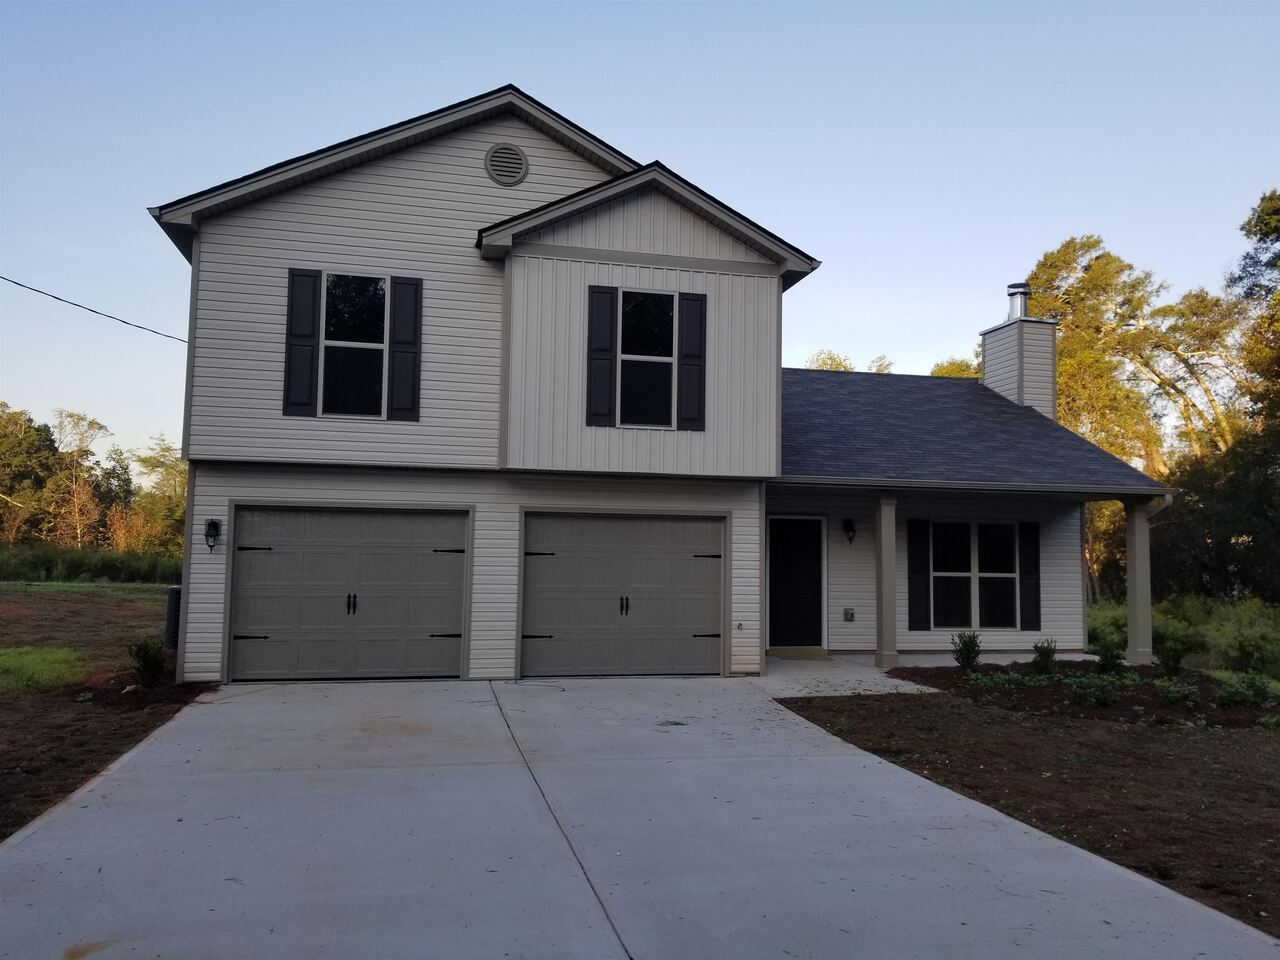 45 Armstrong Drive #107, Mansfield, GA 30055 - MLS#: 9052241